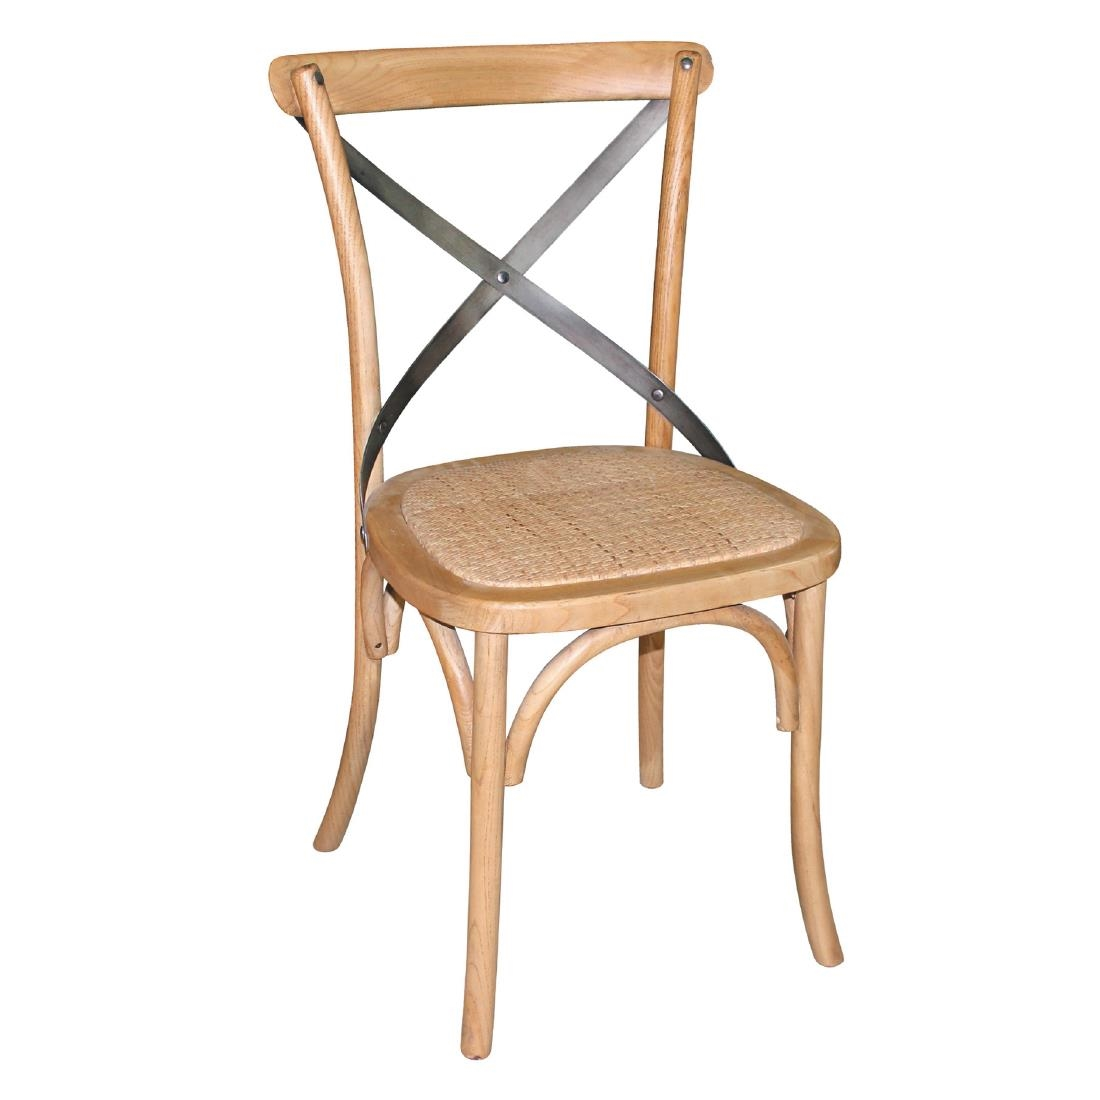 Bolero Natural Bentwood Chairs With Metal Cross Backrest Pack Of 2